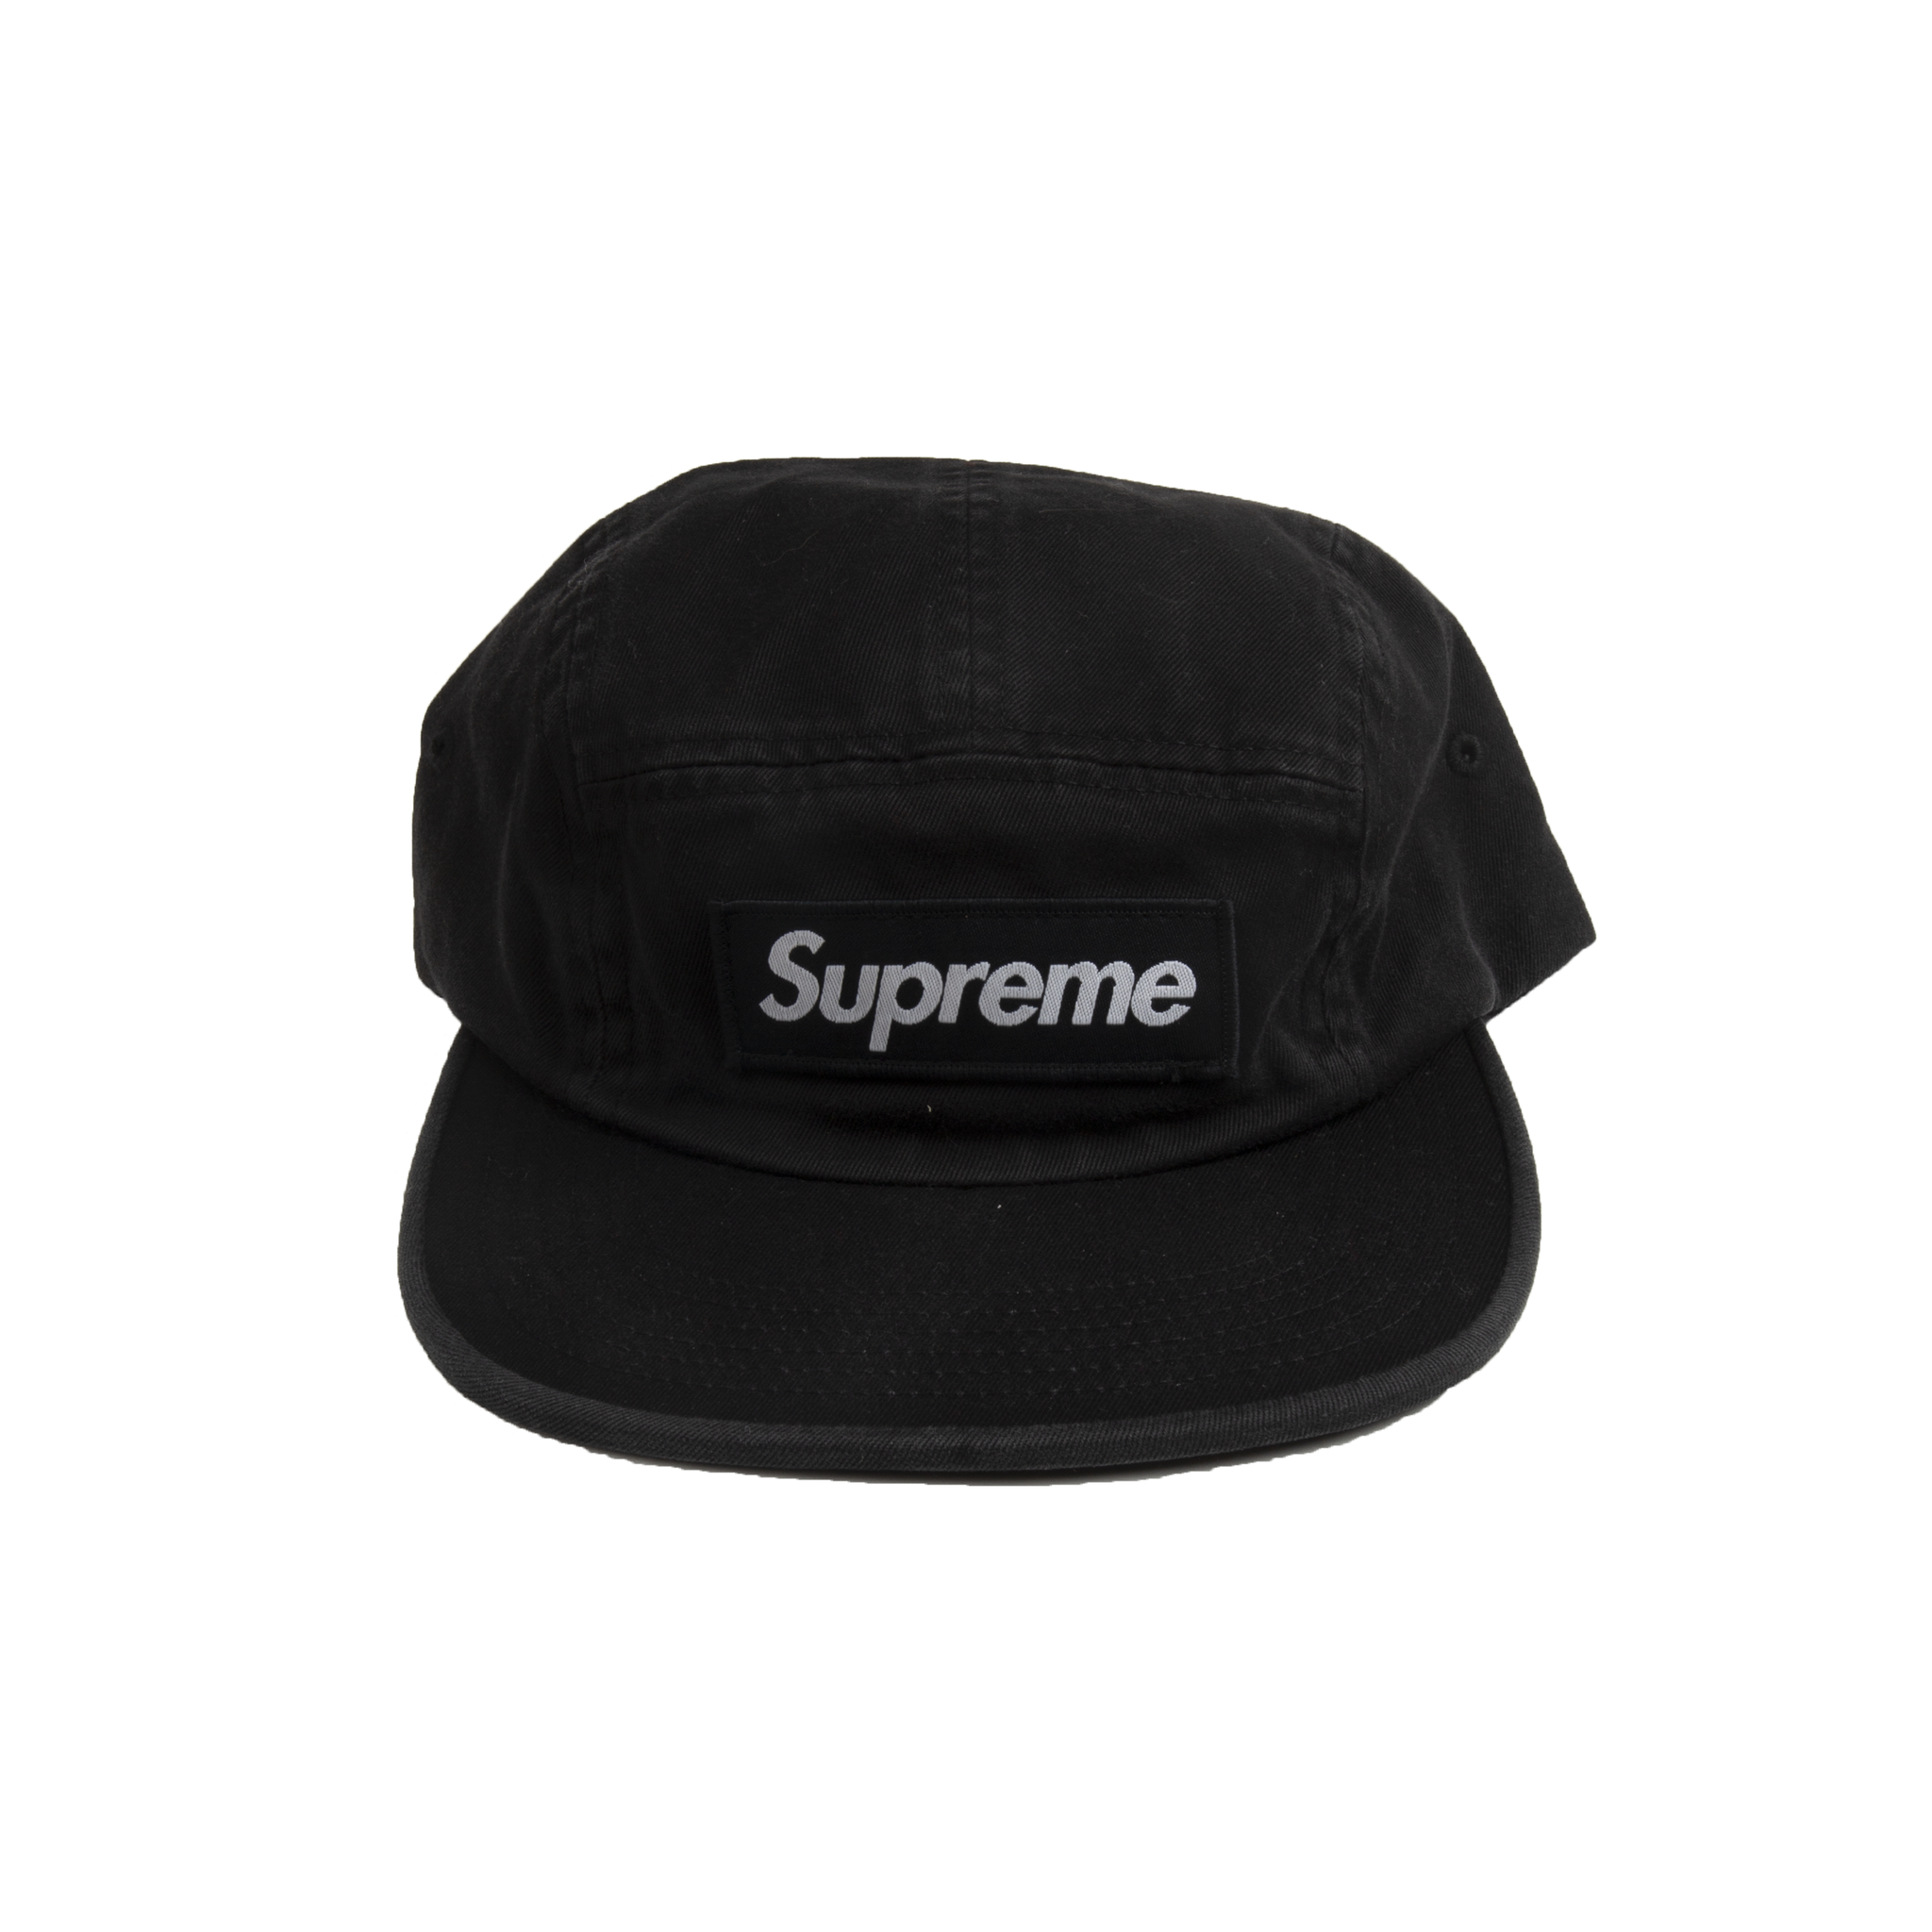 Supreme Black Washed Chino Twill Camp Cap